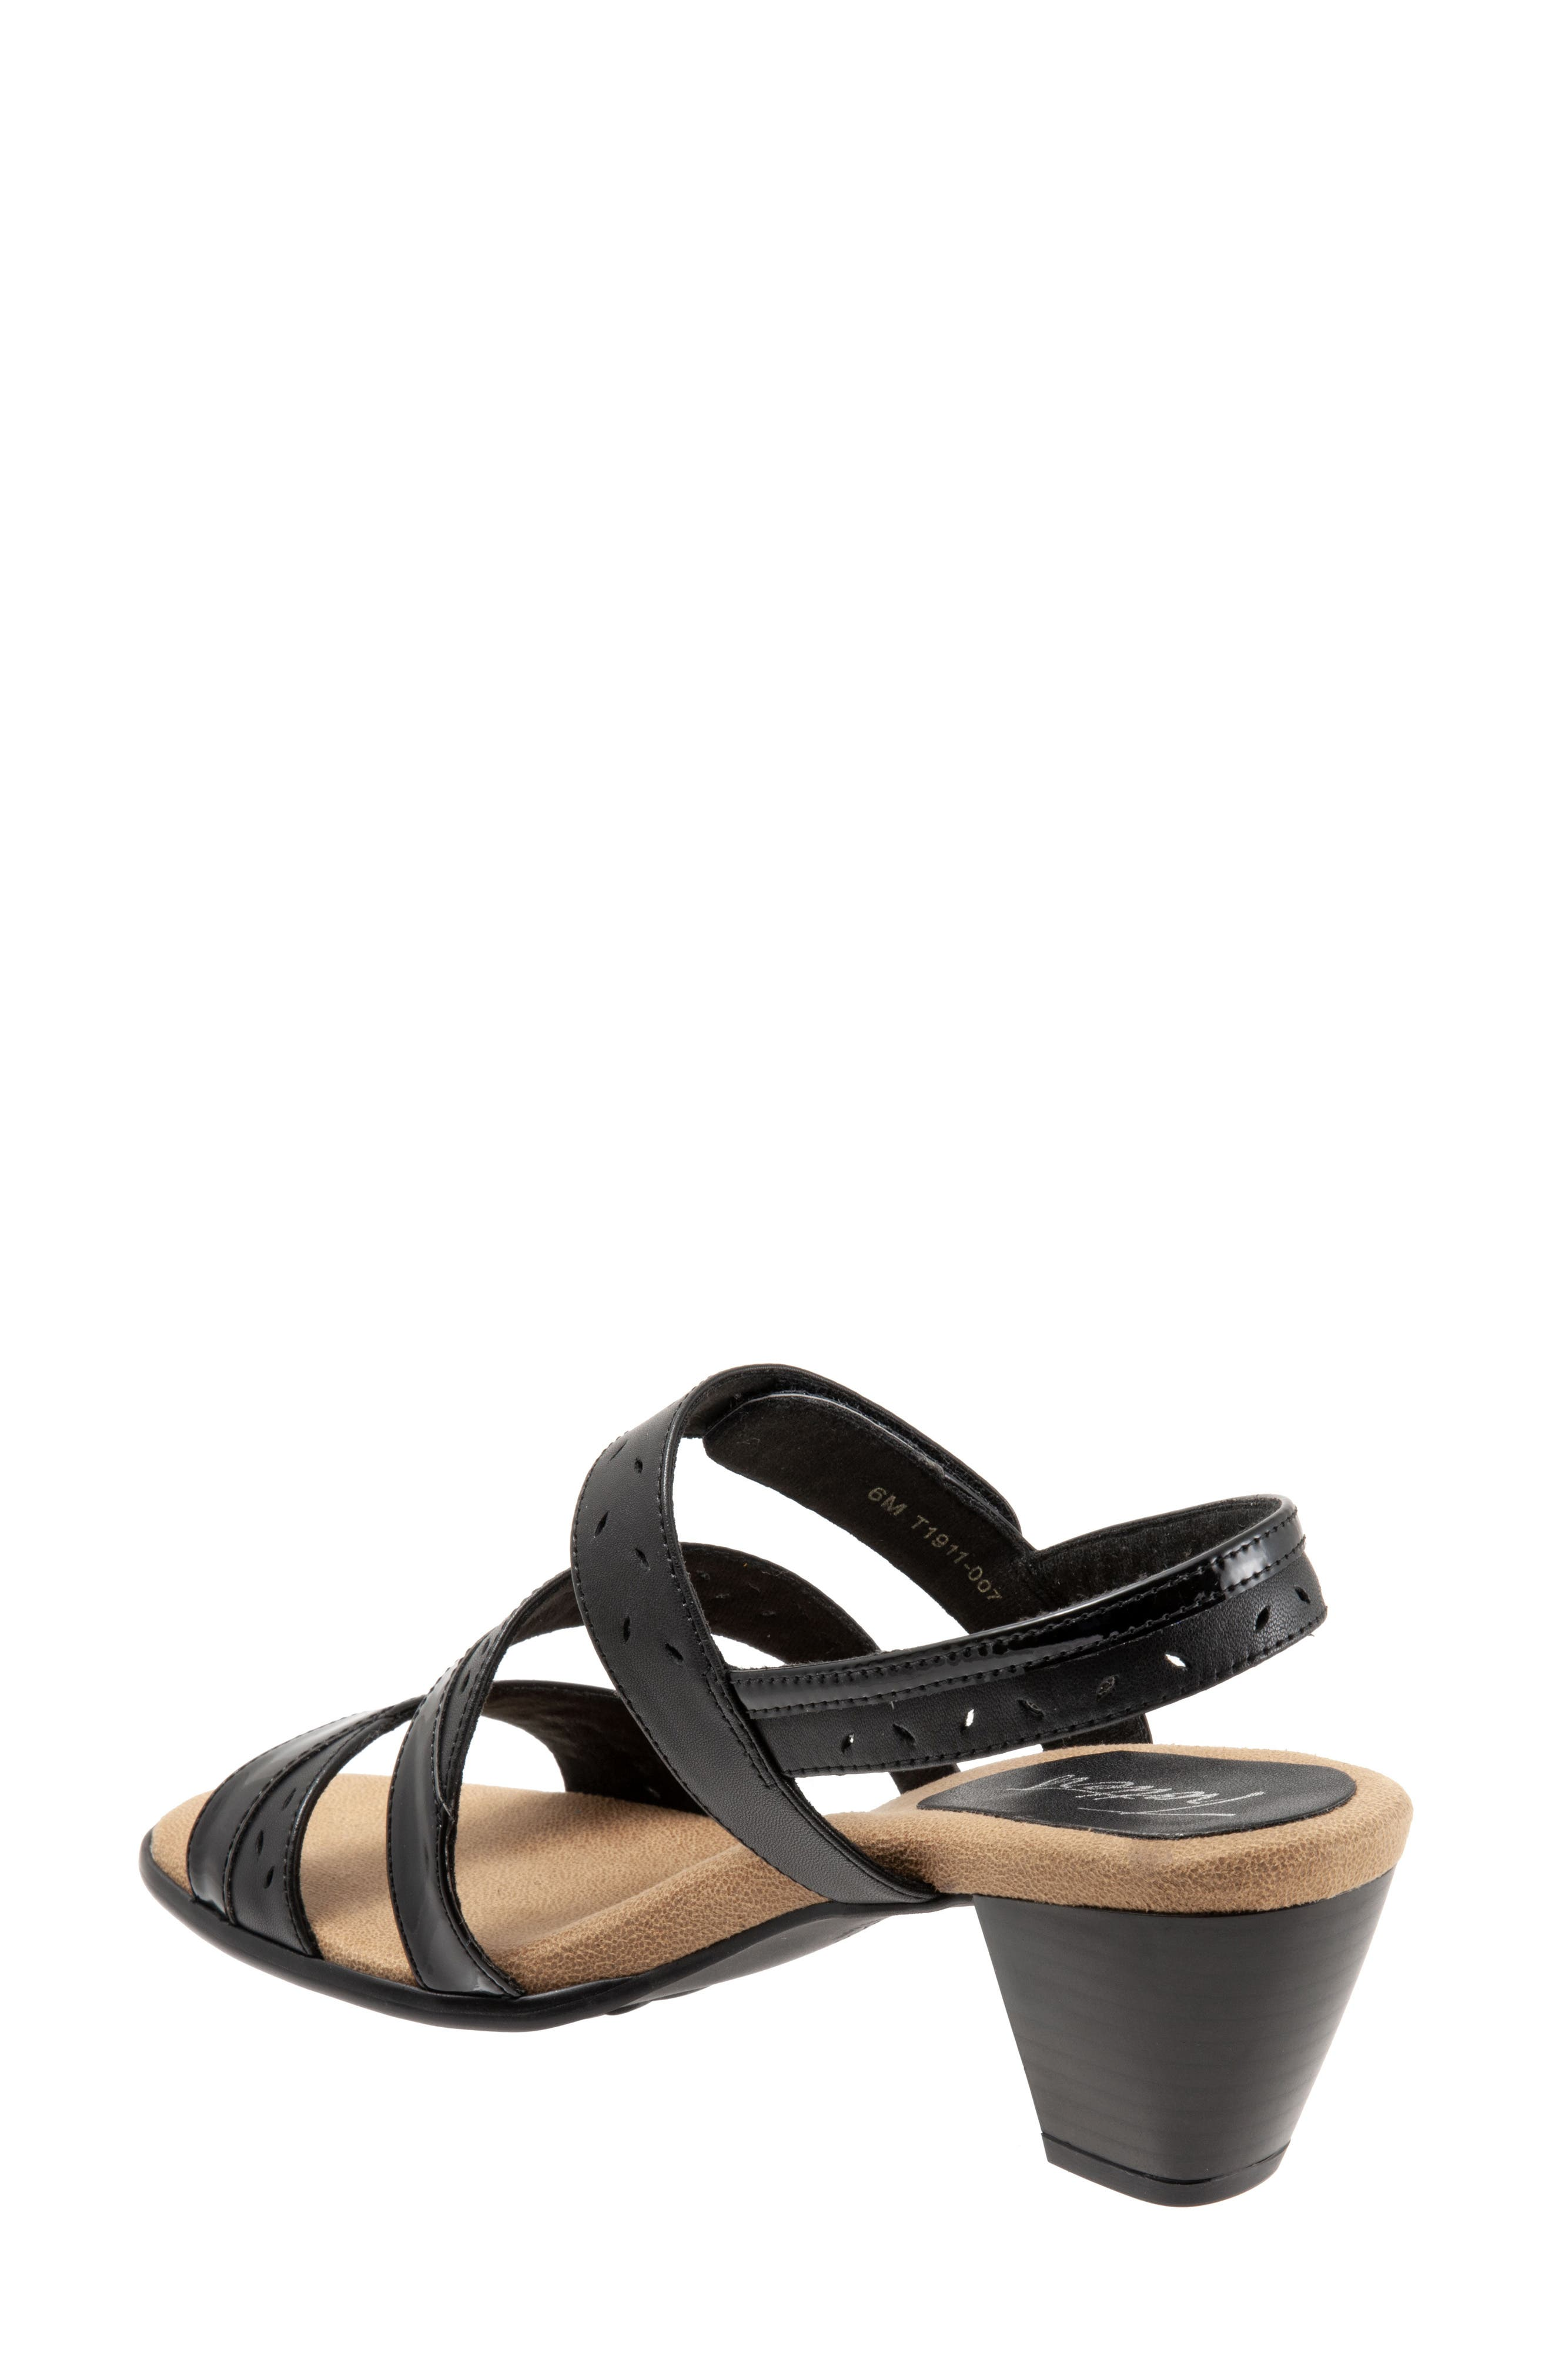 TROTTERS, Marvie Perforated Strappy Sandal, Alternate thumbnail 2, color, BLACK LEATHER